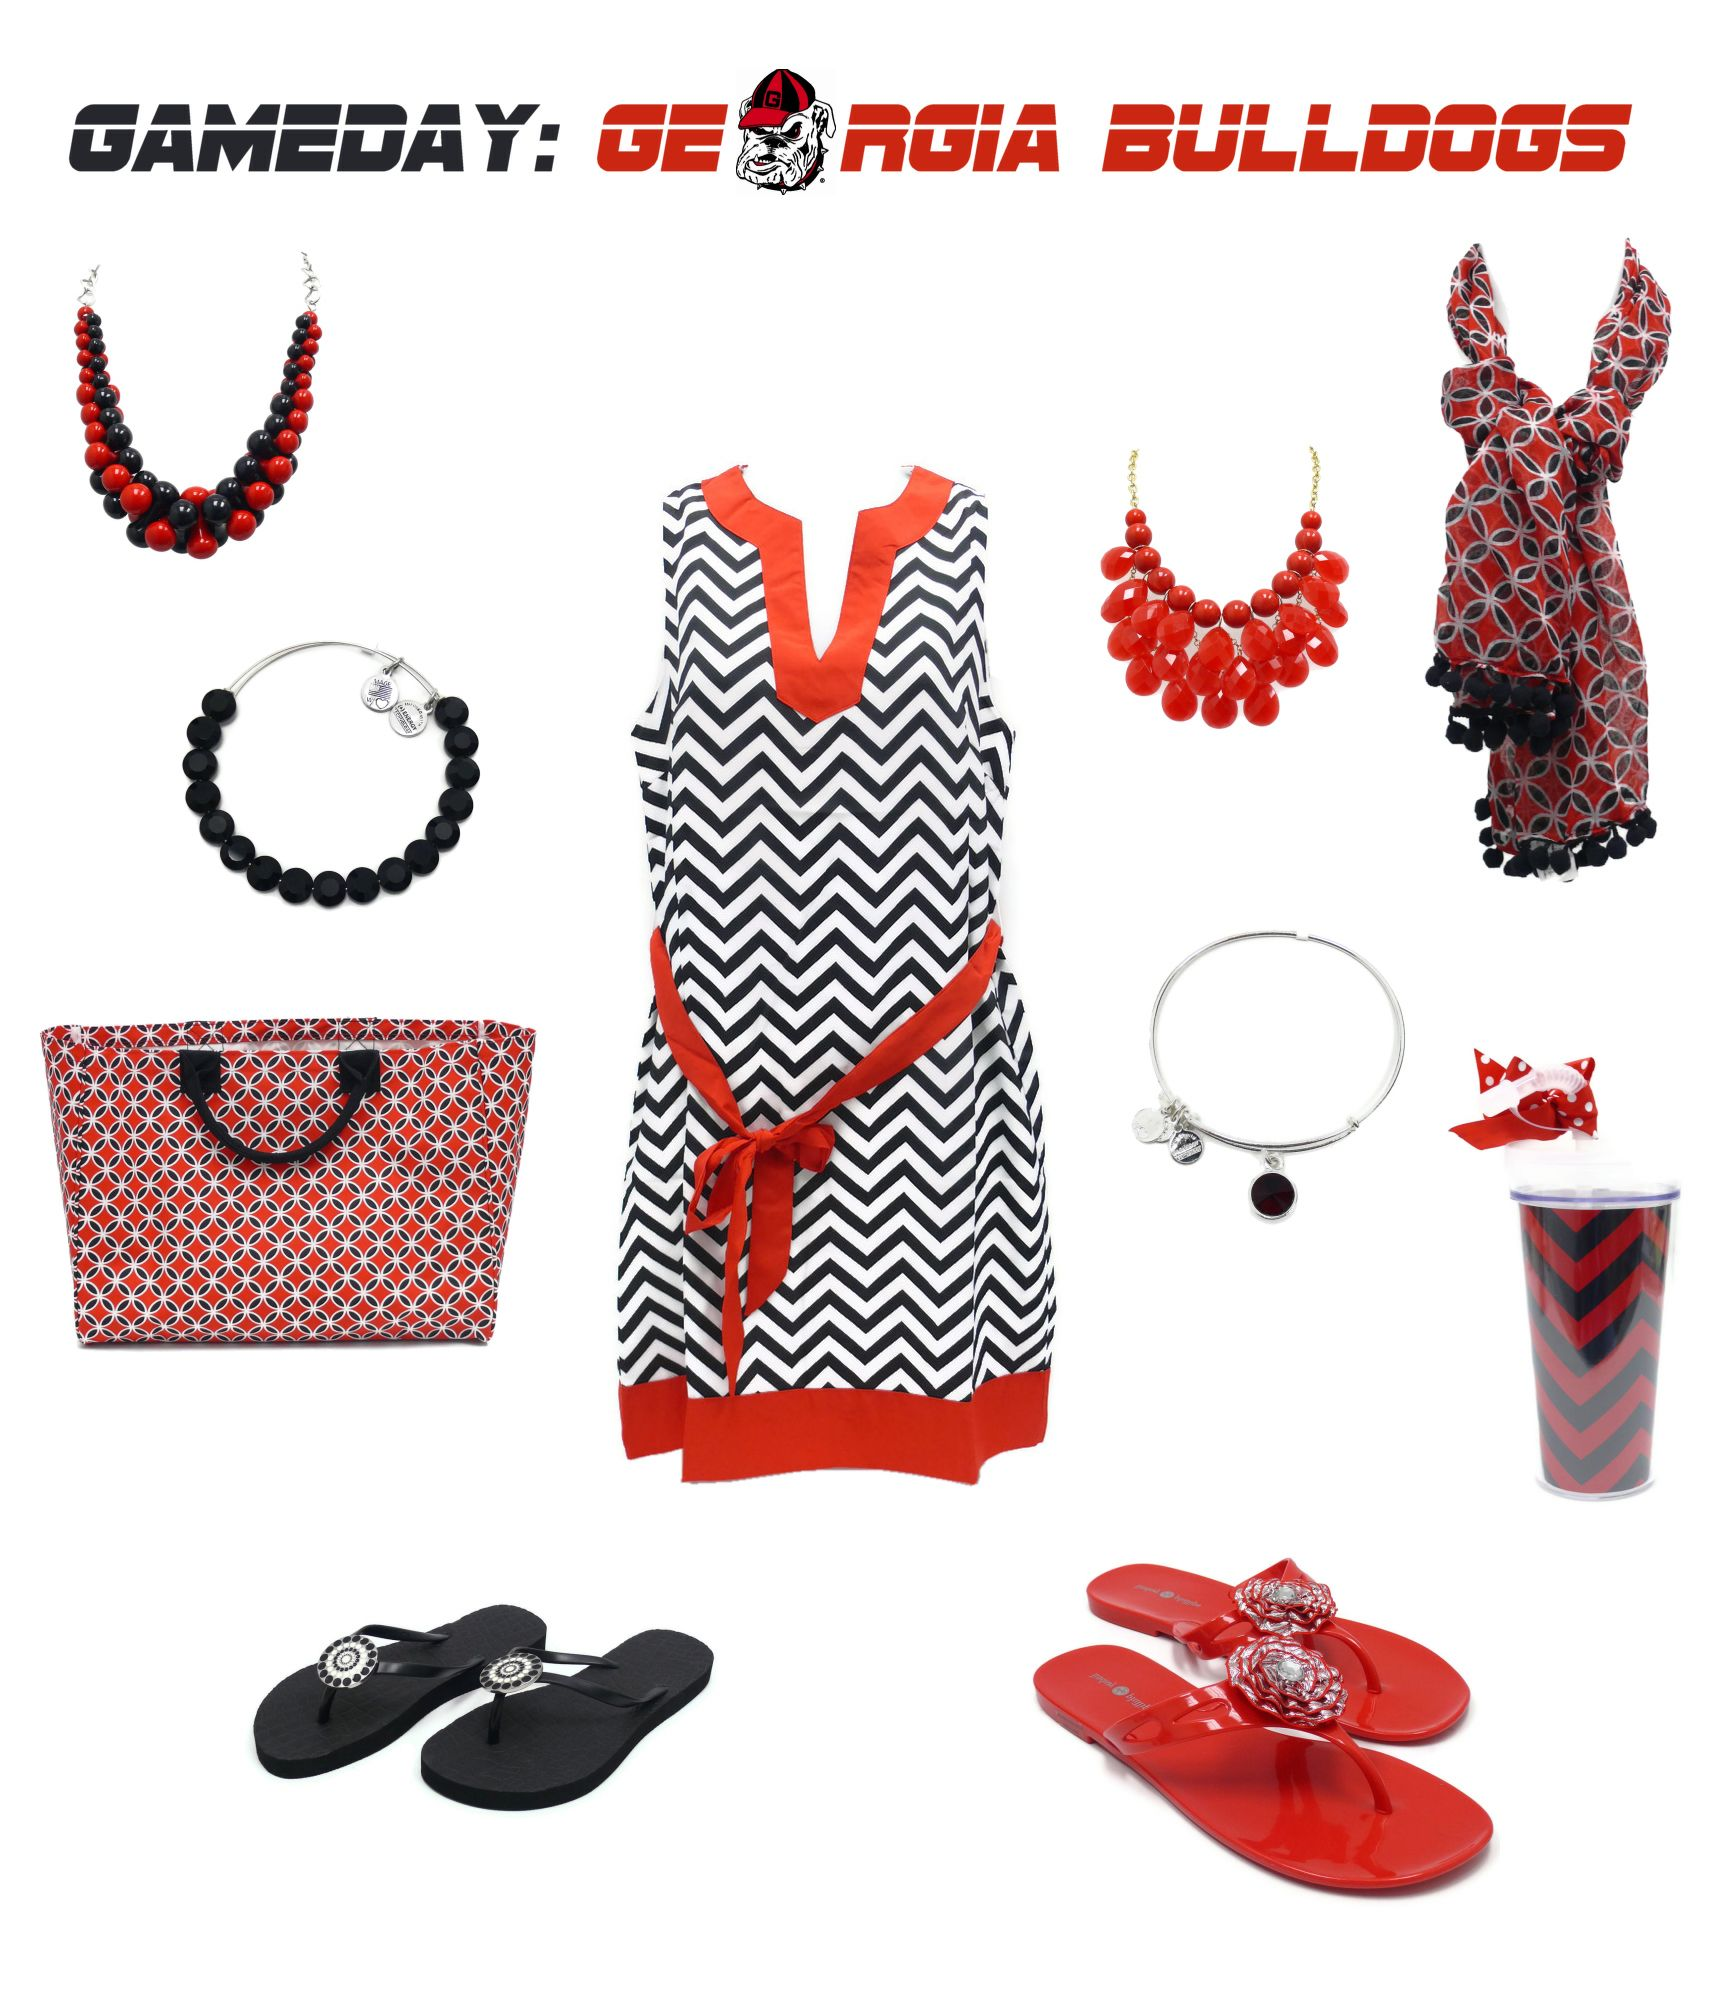 Bulldogs Game Day Outfit and Accessories